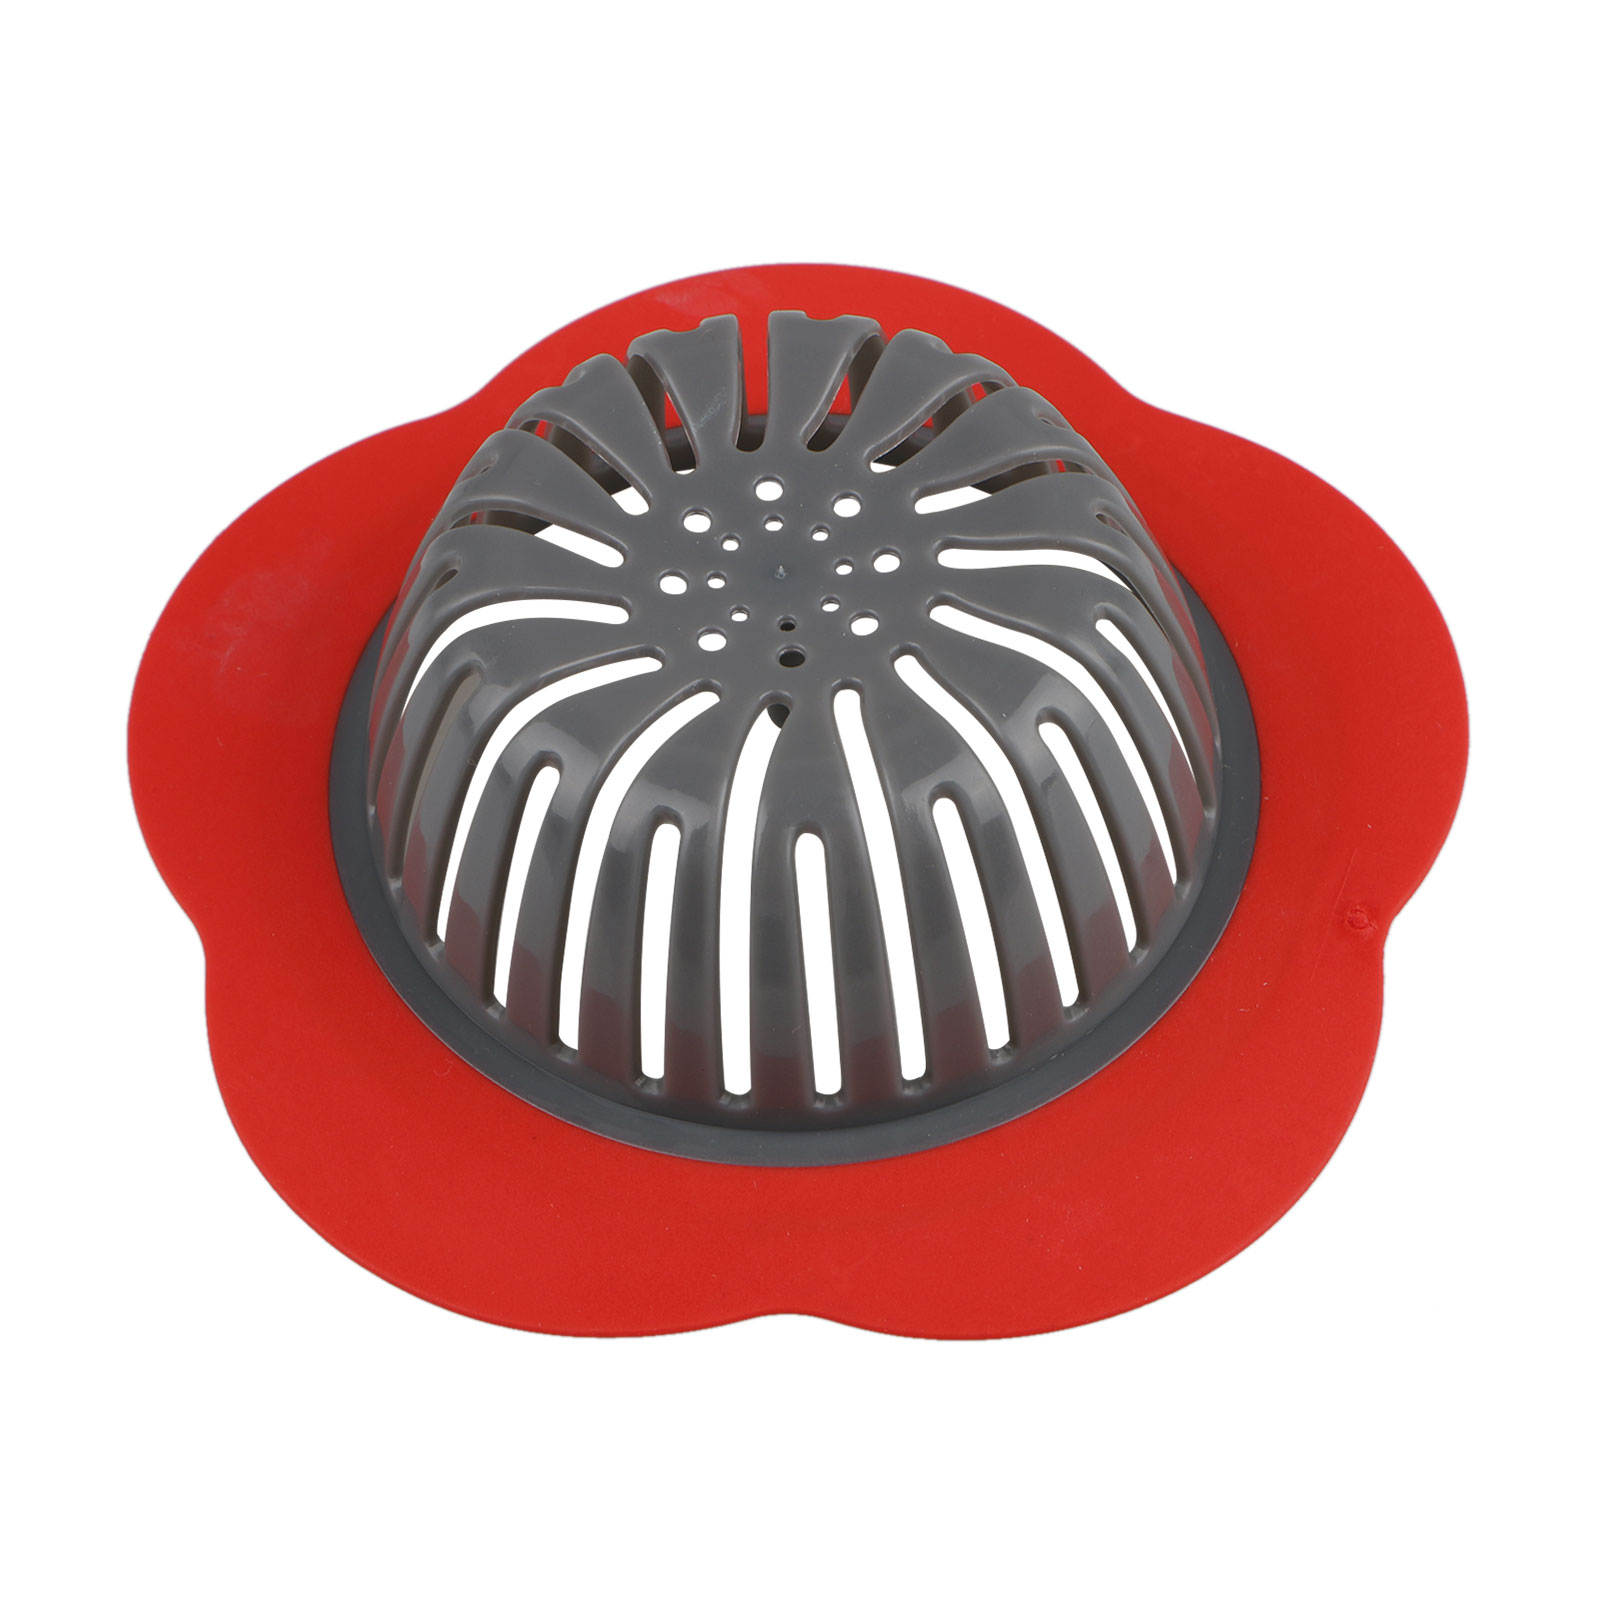 Flower Sink Basket Strainer Drain Filter Stopper Drainage Hair Trap Cover Used in Kitchen & Bathroom Blue/Red